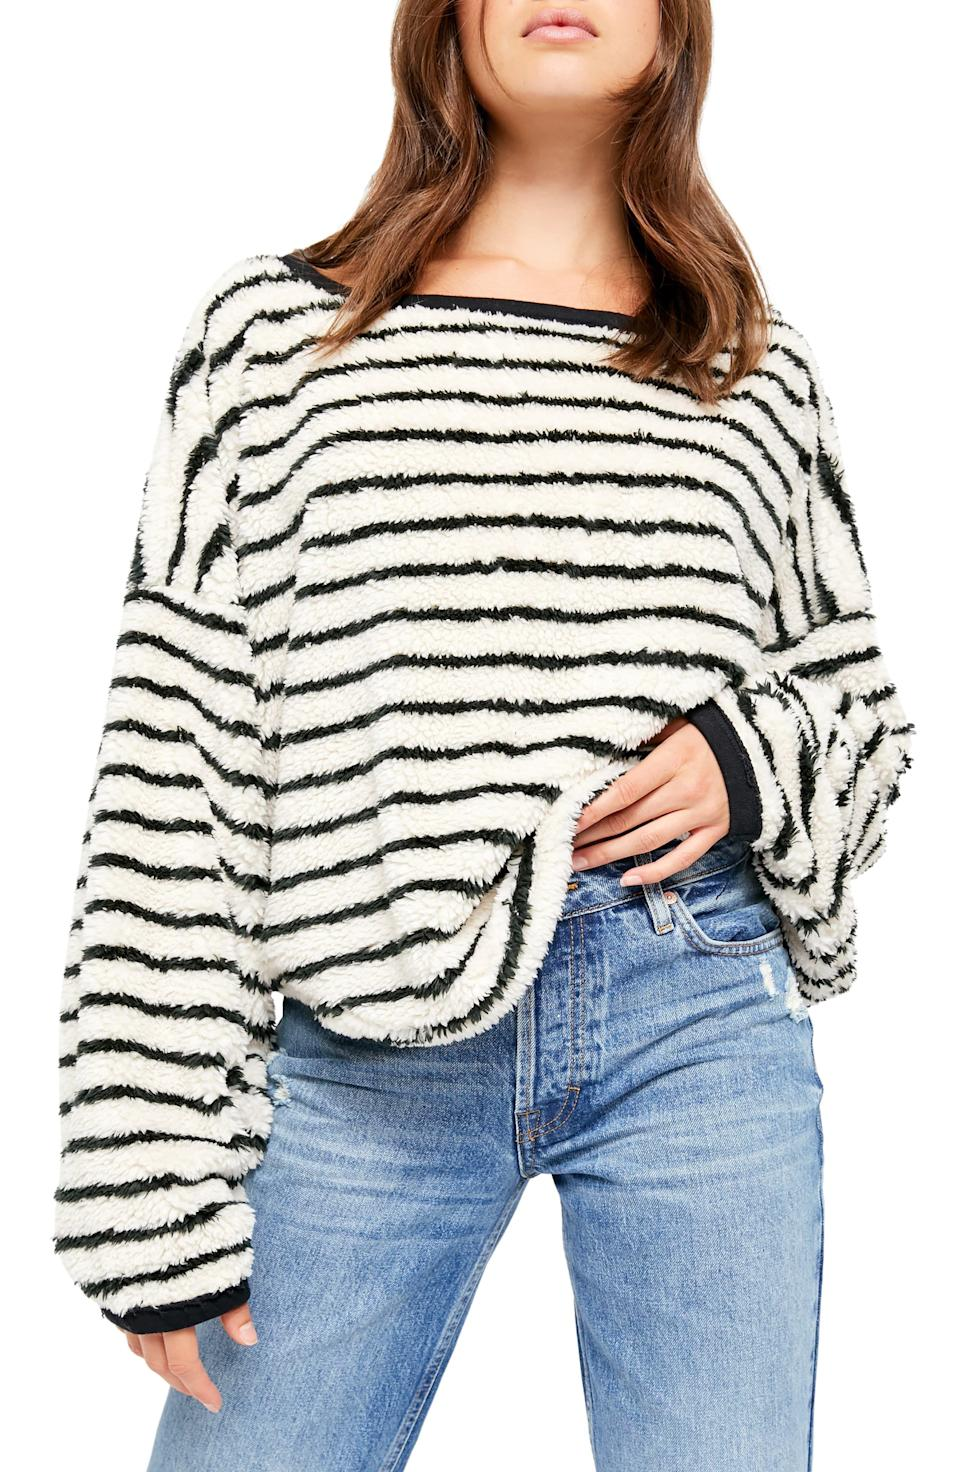 """<p><strong>FREE PEOPLE</strong></p><p>nordstrom.com</p><p><strong>$64.90</strong></p><p><a href=""""https://go.redirectingat.com?id=74968X1596630&url=https%3A%2F%2Fshop.nordstrom.com%2Fs%2Ffree-people-breton-stripe-pullover%2F5439397&sref=https%3A%2F%2Fwww.goodhousekeeping.com%2Flife%2Fmoney%2Fg33419415%2Fbest-nordstrom-anniversary-sales-2020%2F"""" rel=""""nofollow noopener"""" target=""""_blank"""" data-ylk=""""slk:Shop Now"""" class=""""link rapid-noclick-resp"""">Shop Now</a></p><p><em>originally $98<br><br></em>Elevate your fall and winter wardrobe with this black and white striped sweater with a flattering boat neck.</p>"""